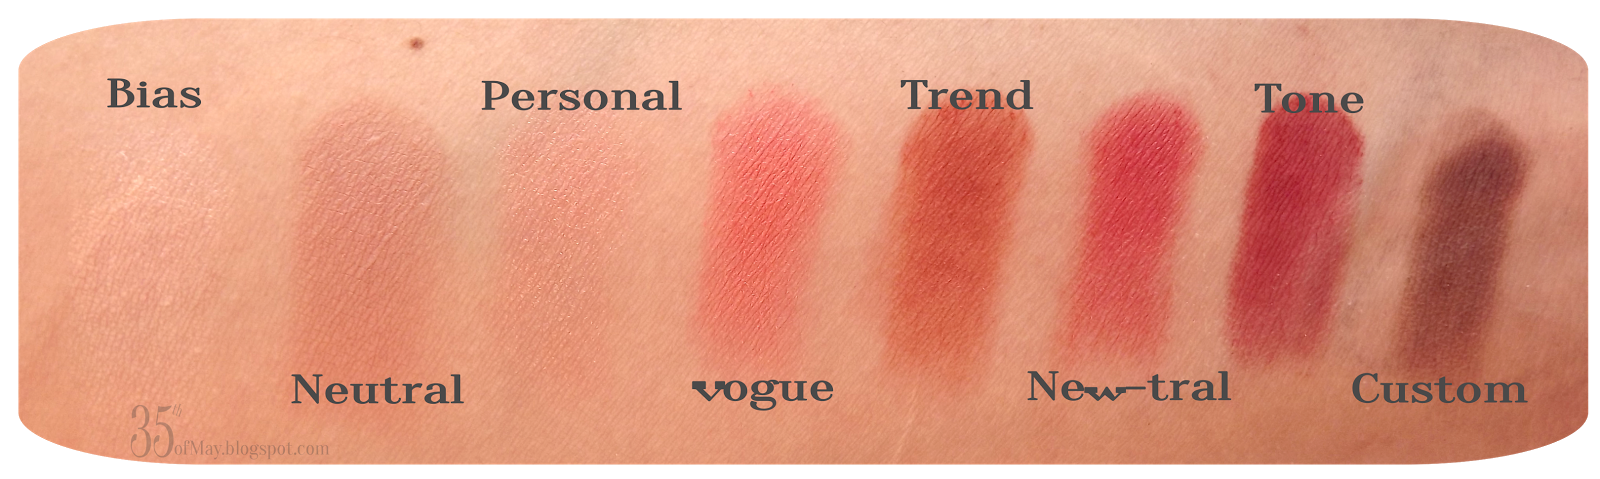 Makeup Revolution New-trals vs Neutrals Palette review swatch